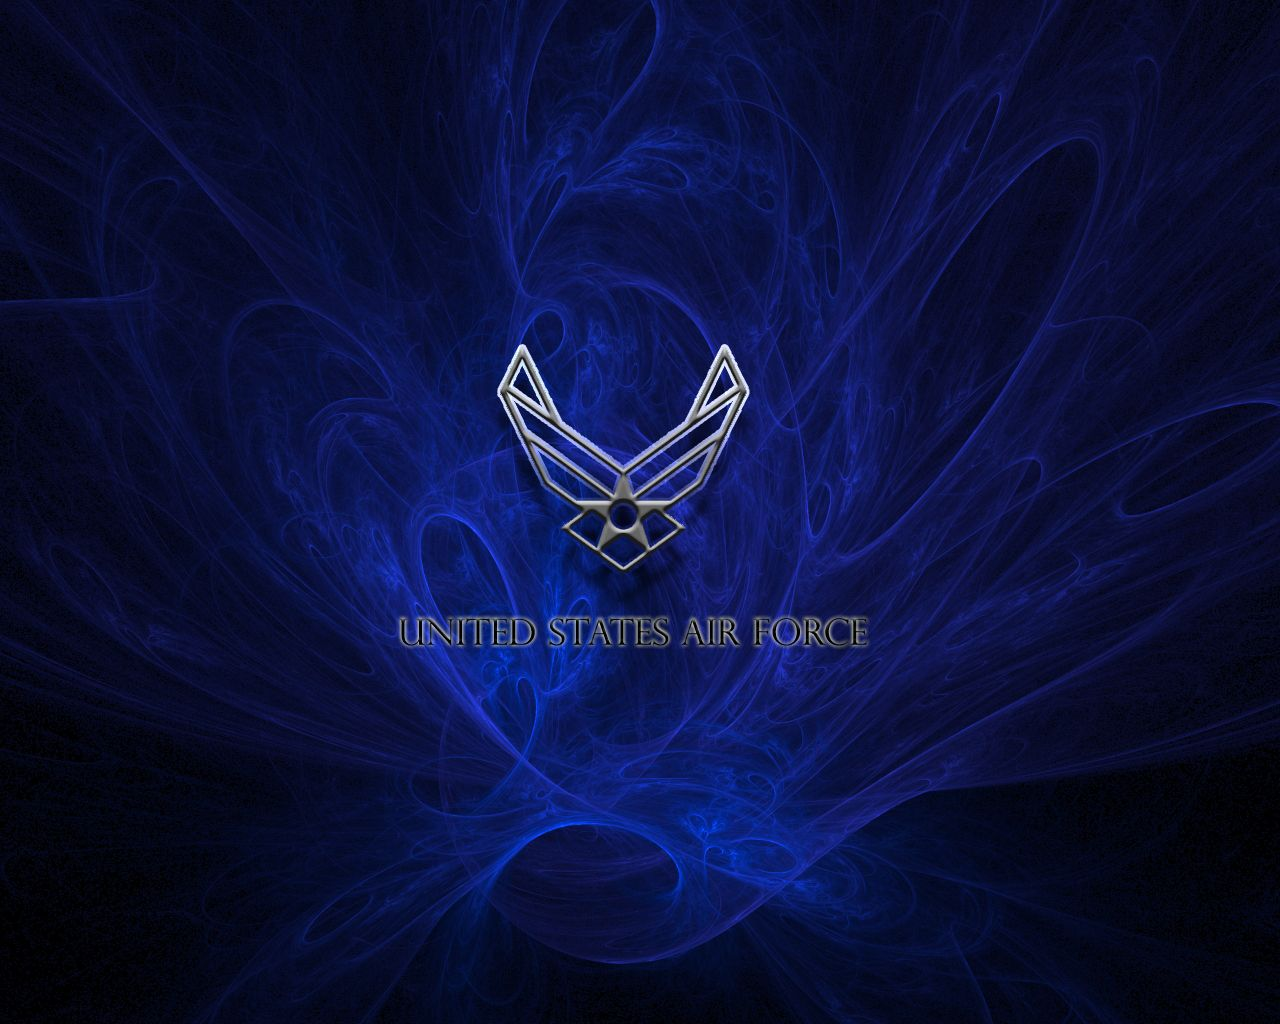 Usaf Wallpapers Top Free Usaf Backgrounds Wallpaperaccess